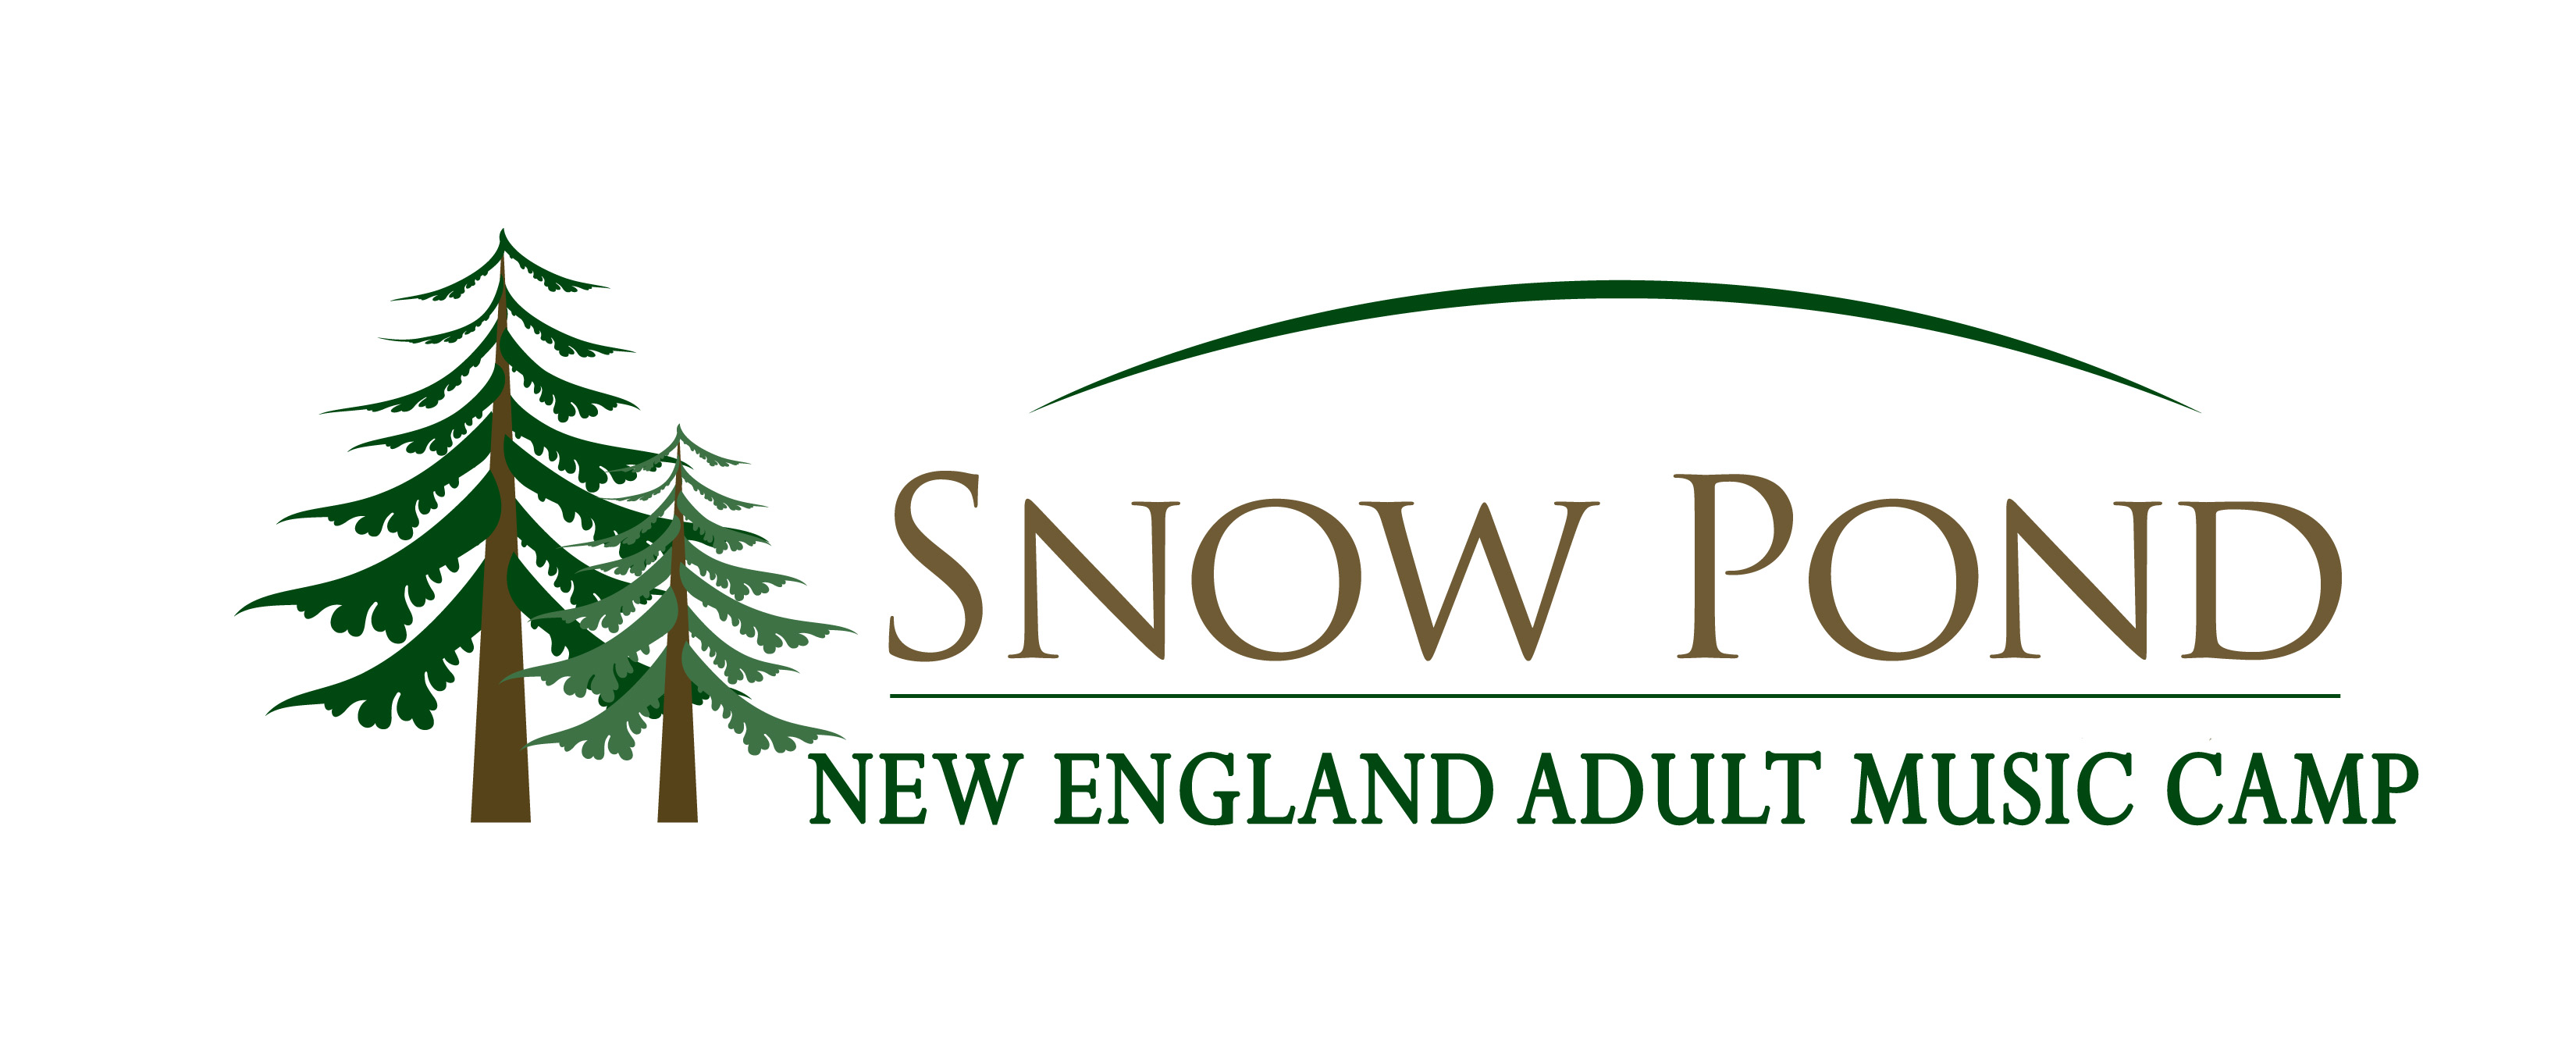 New England Adult Music Camp